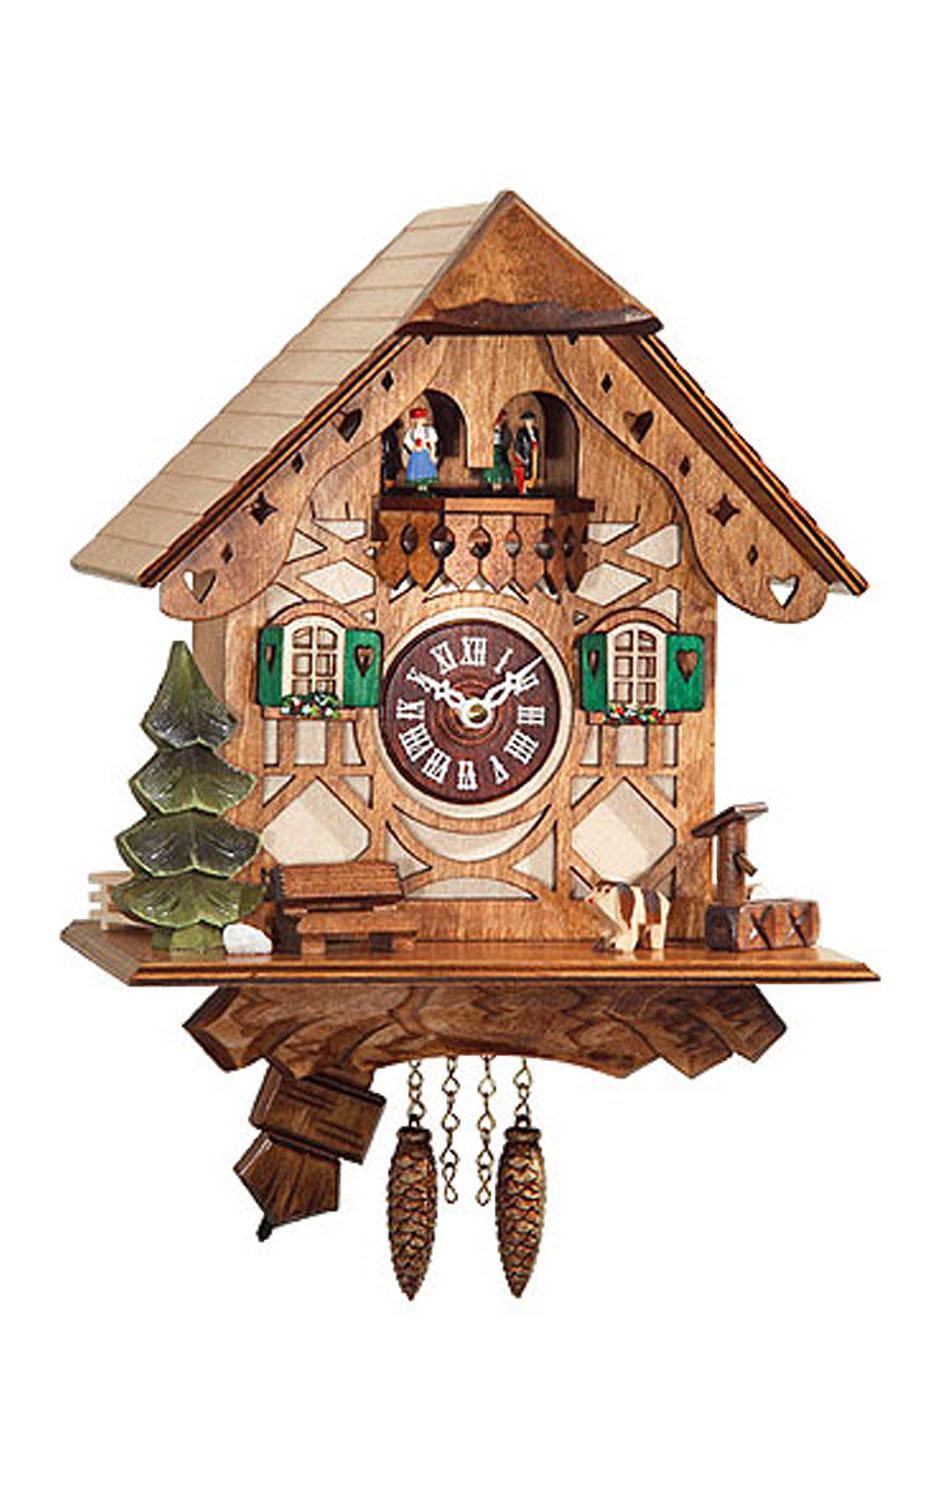 "Alexander Taron Engstler Battery-operated Clock Mini Size with Music Chimes 8.25""H x 8""W x 5.25""D by ENGS"